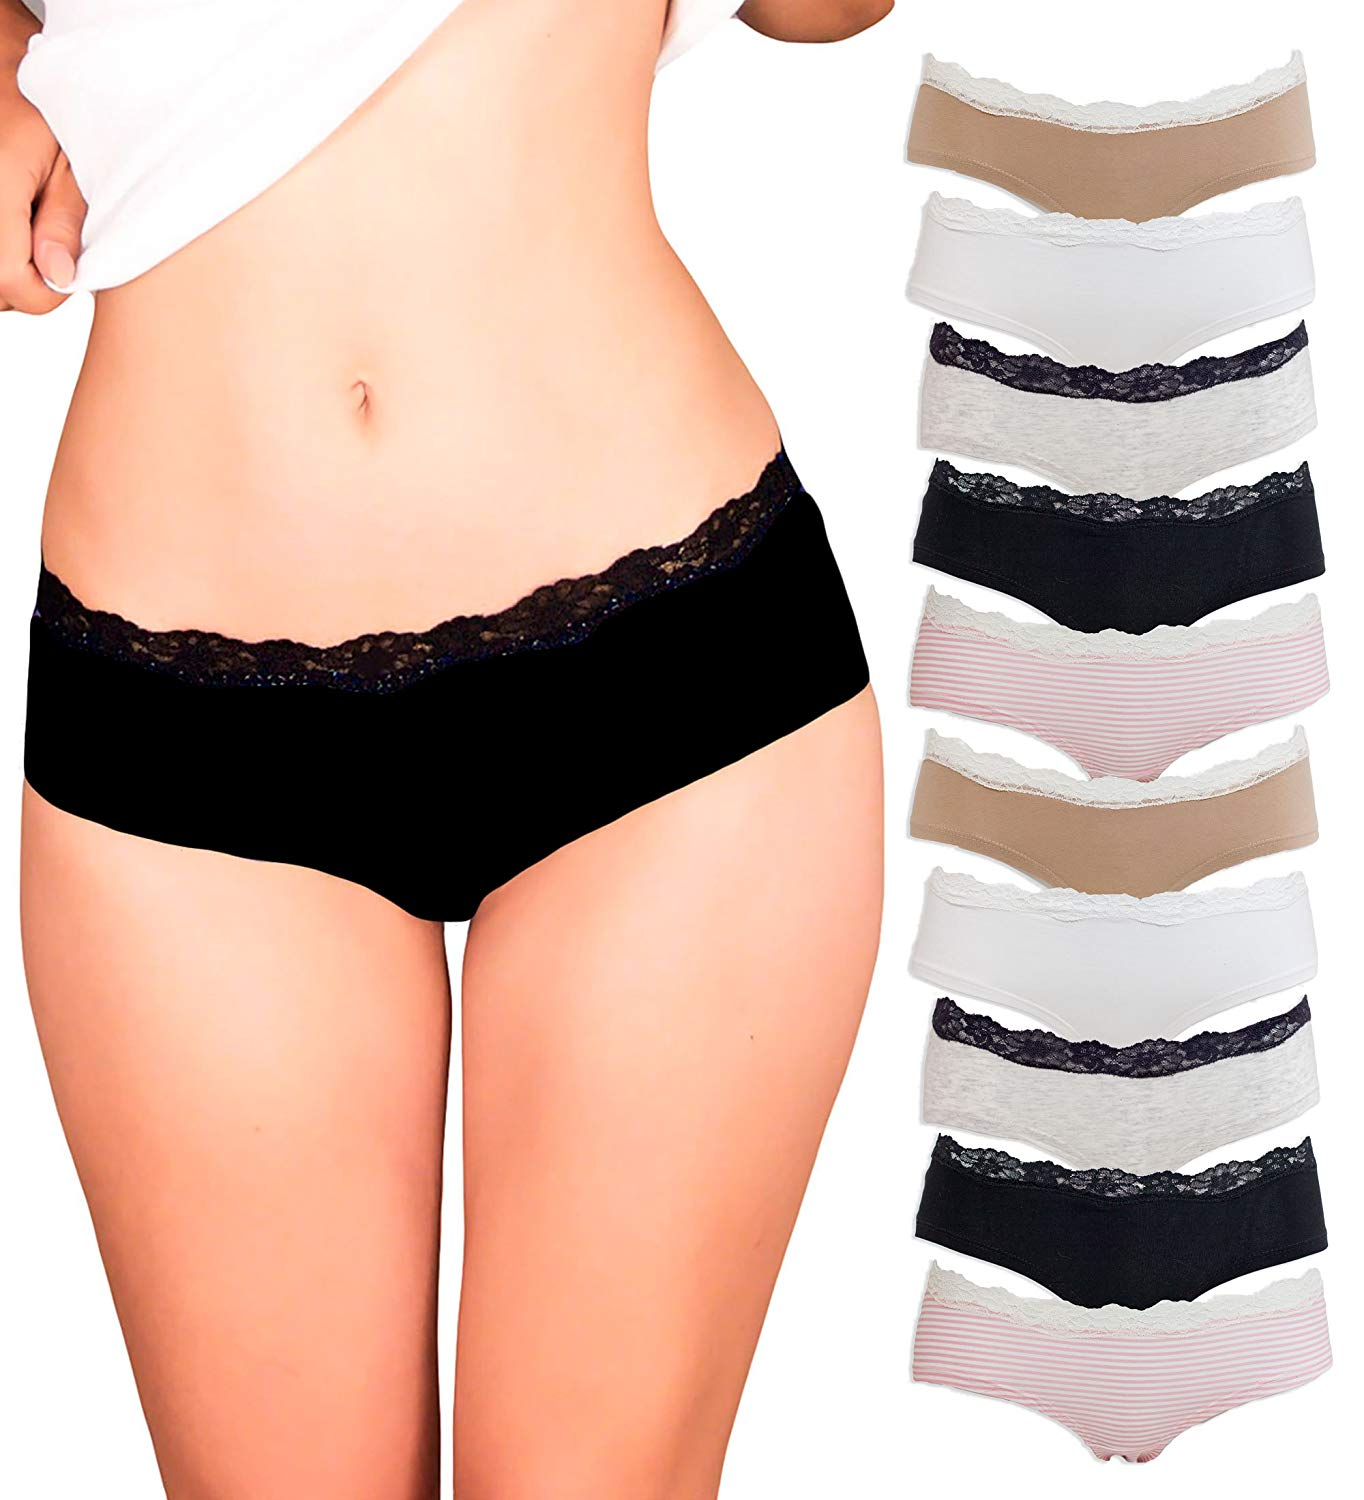 dd9e57d9c Get Quotations · Emprella Womens Lace Underwear Hipster Panties Cotton  Spandex - 10 Pack Colors and Patterns May